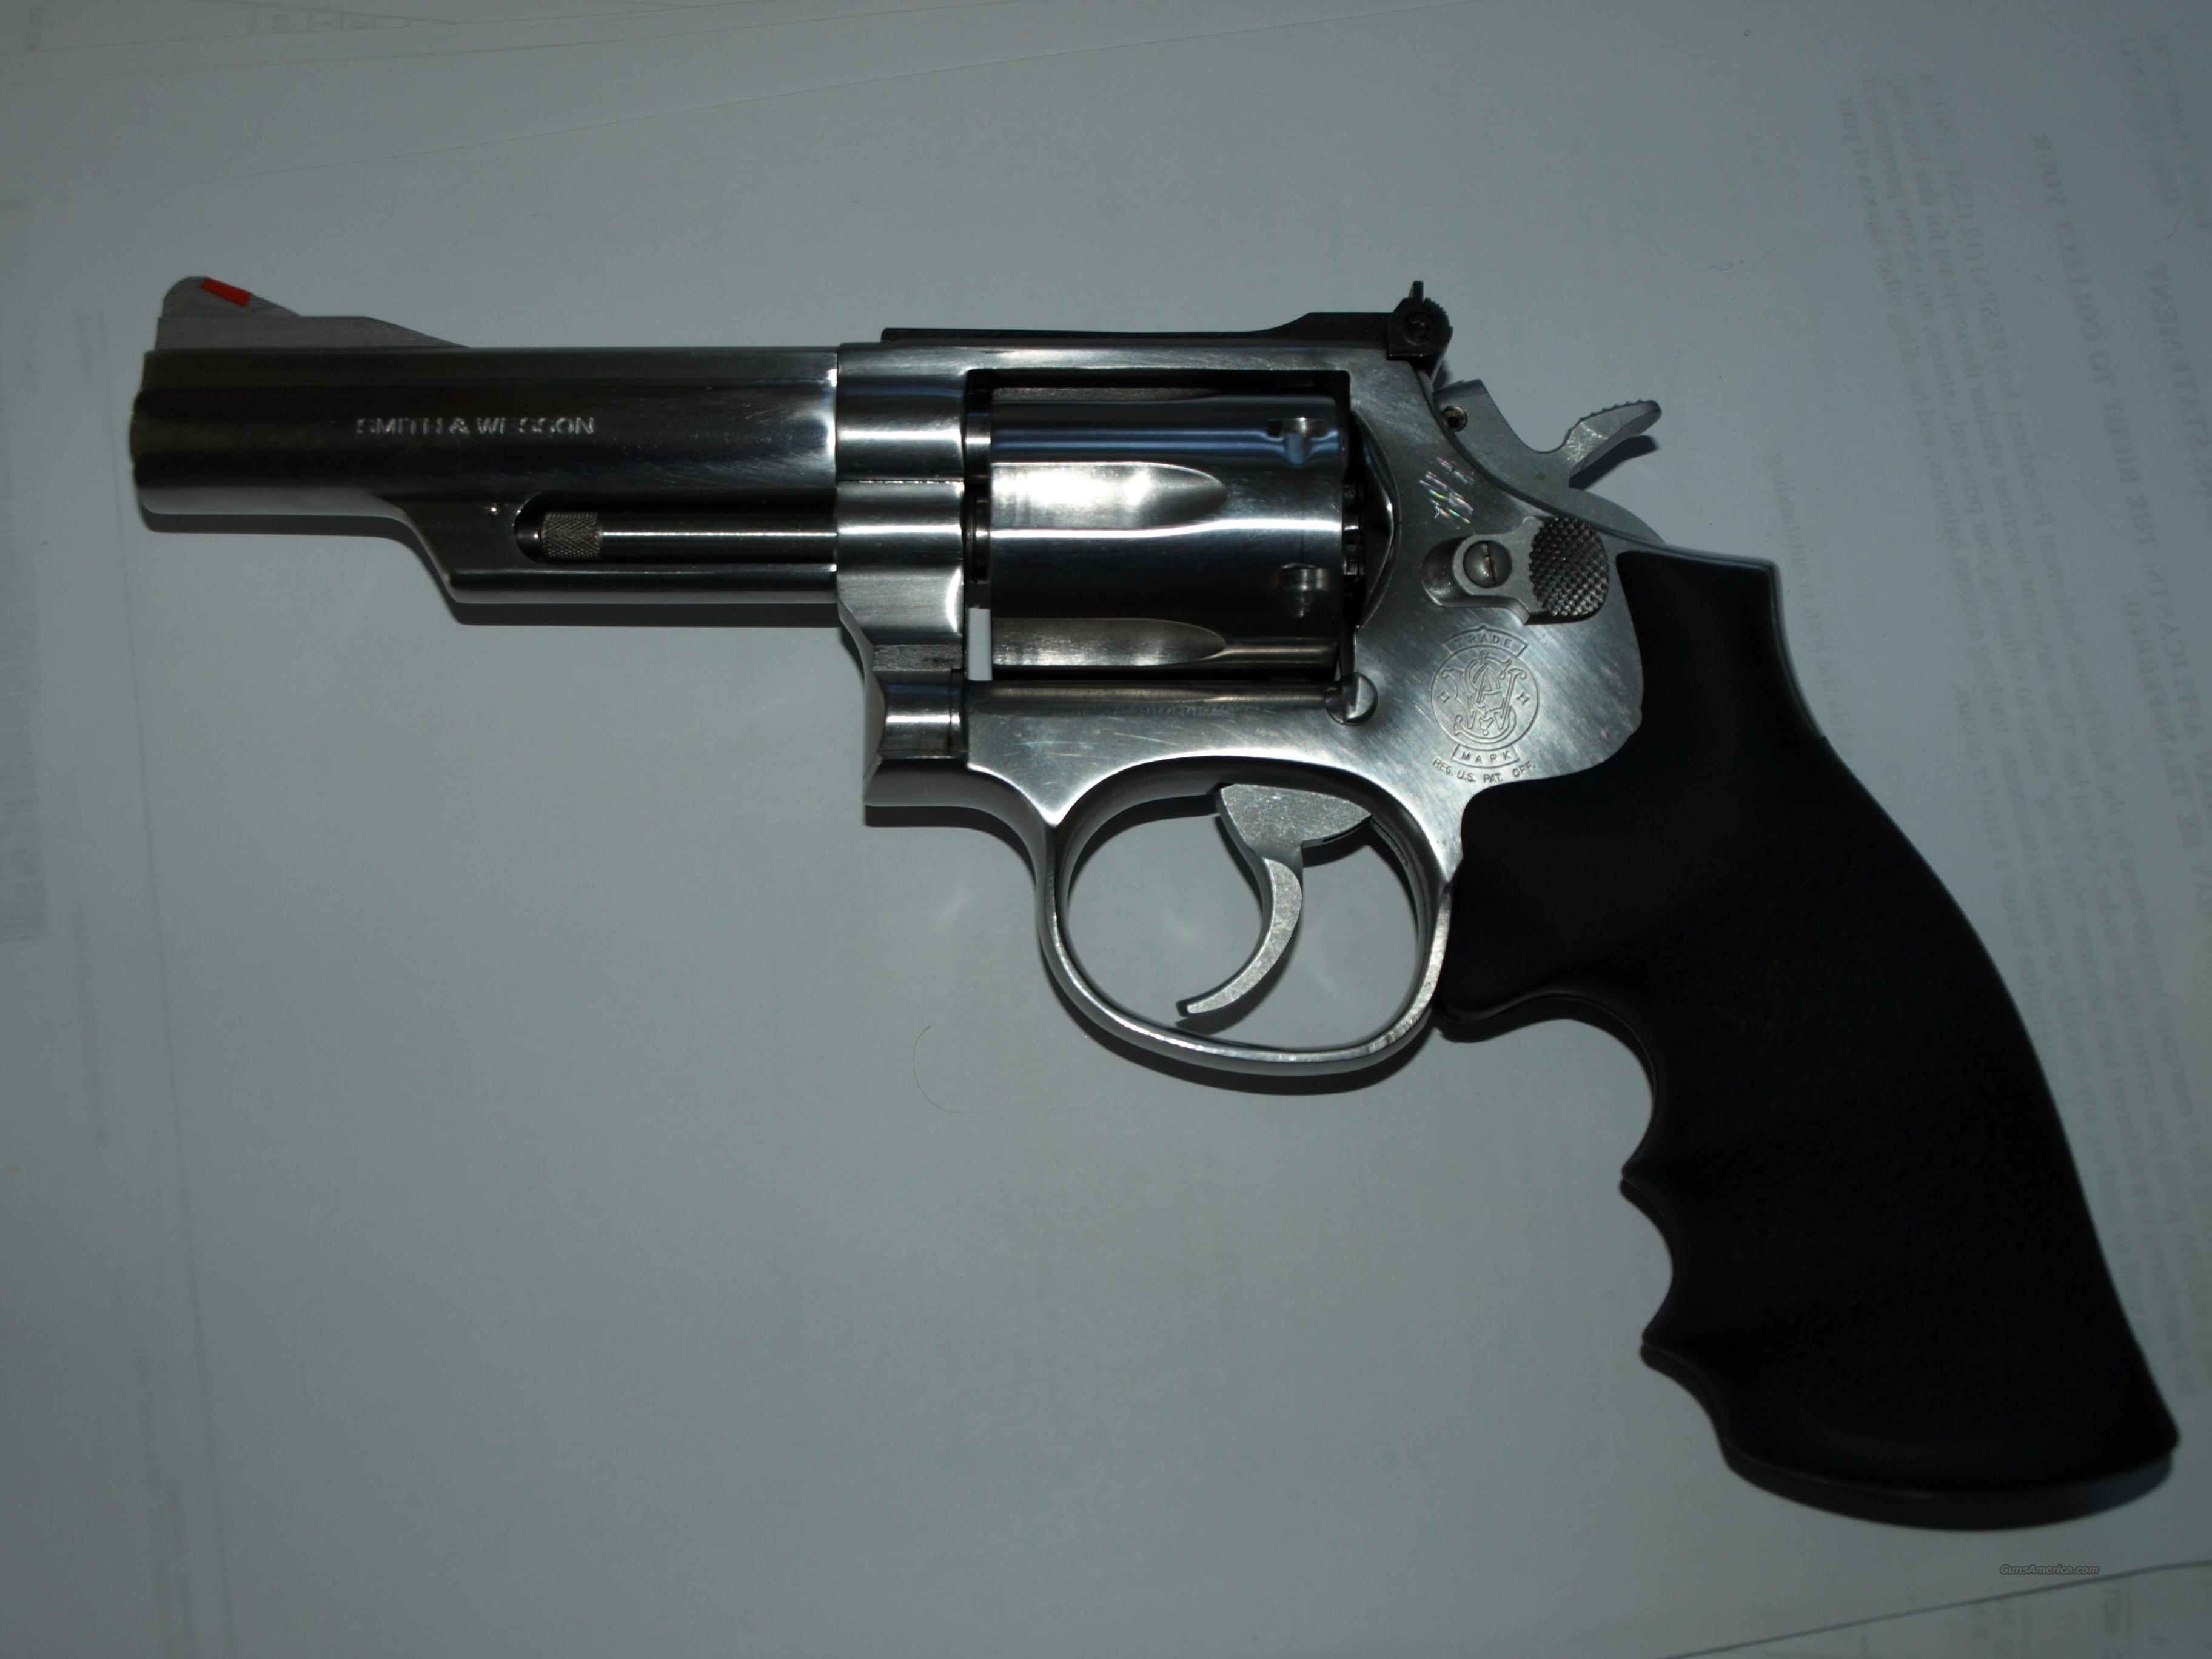 S&W .357 Revolver  Guns > Pistols > Smith & Wesson Revolvers > Full Frame Revolver